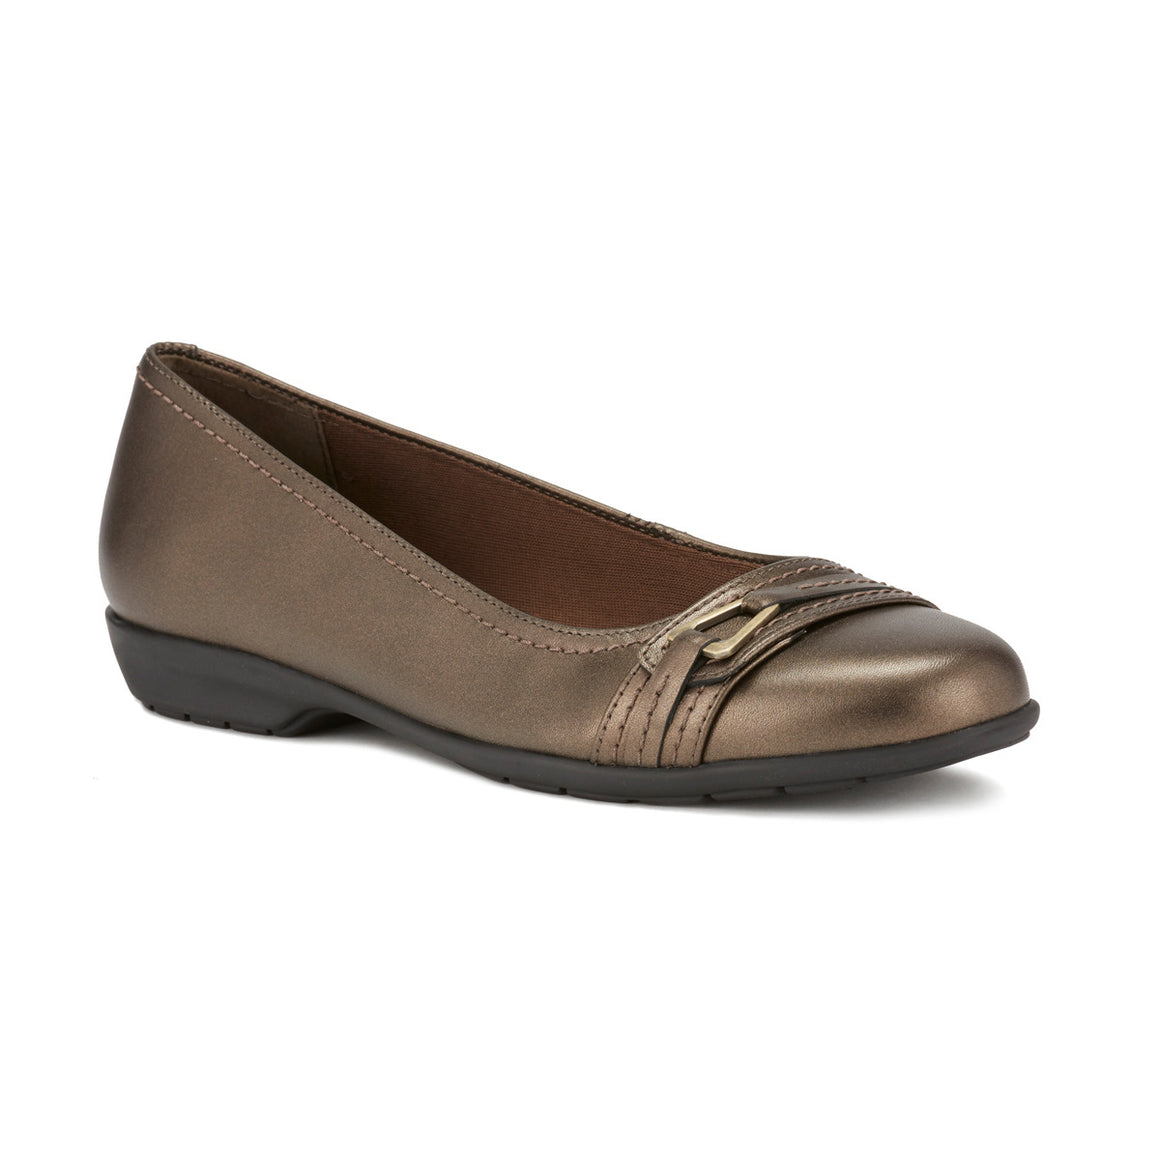 Image of the Flynn. A comfortable metallic bronze leather slip on shoe with a low heel and a small buckle detail on the toe.  Available in narrow width, wide width and extra wide widths.